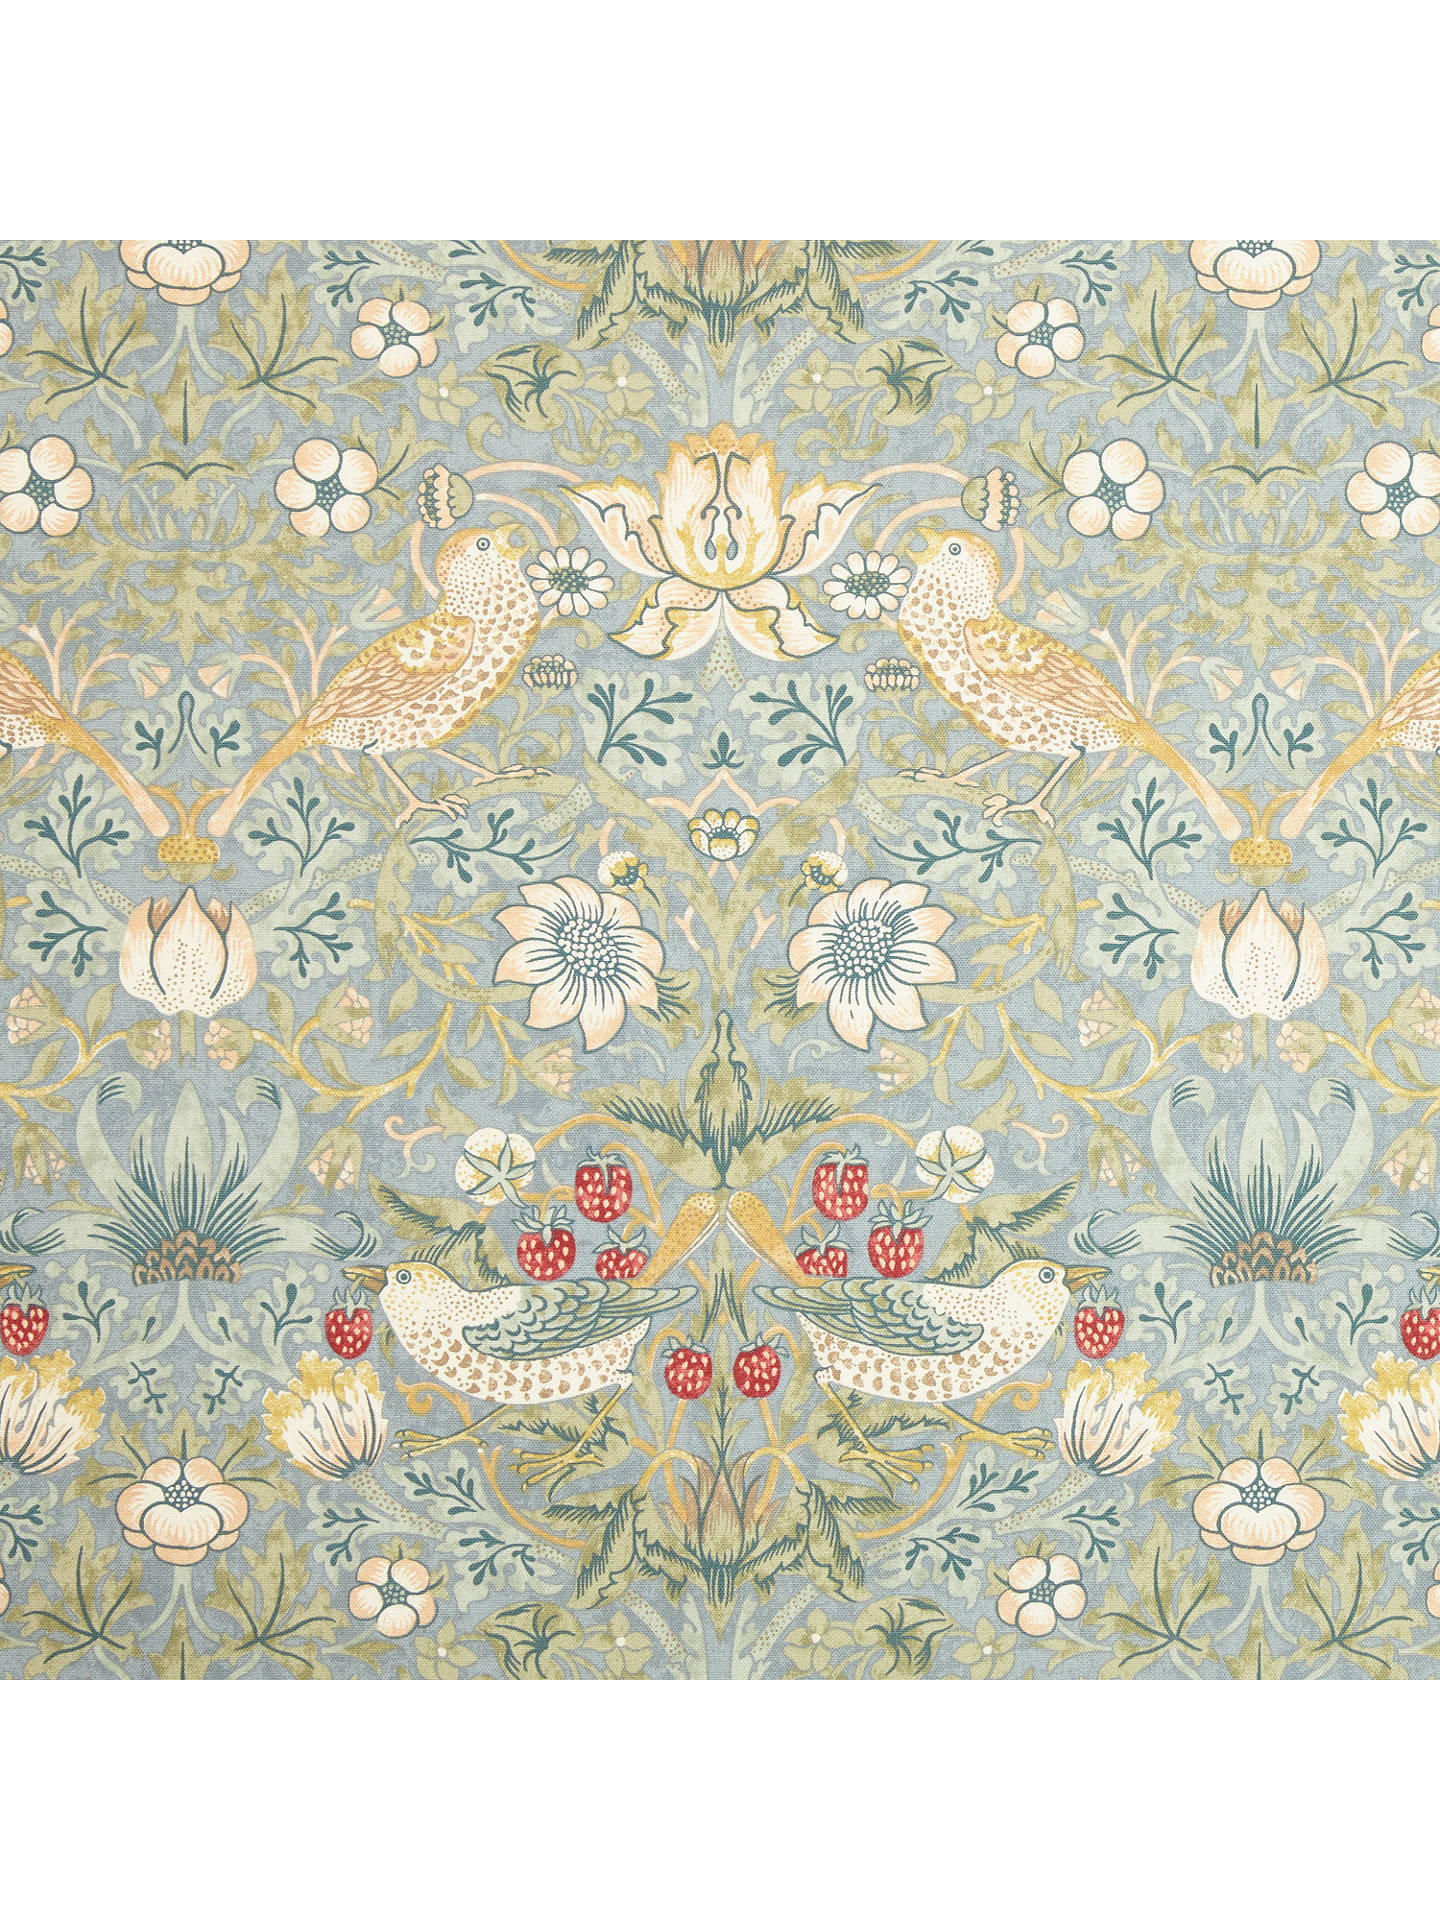 Buy Morris & Co. Strawberry Thief Pair Lined Pencil Pleat Curtains, Duck Egg, W167 x Drop 137cm Online at johnlewis.com